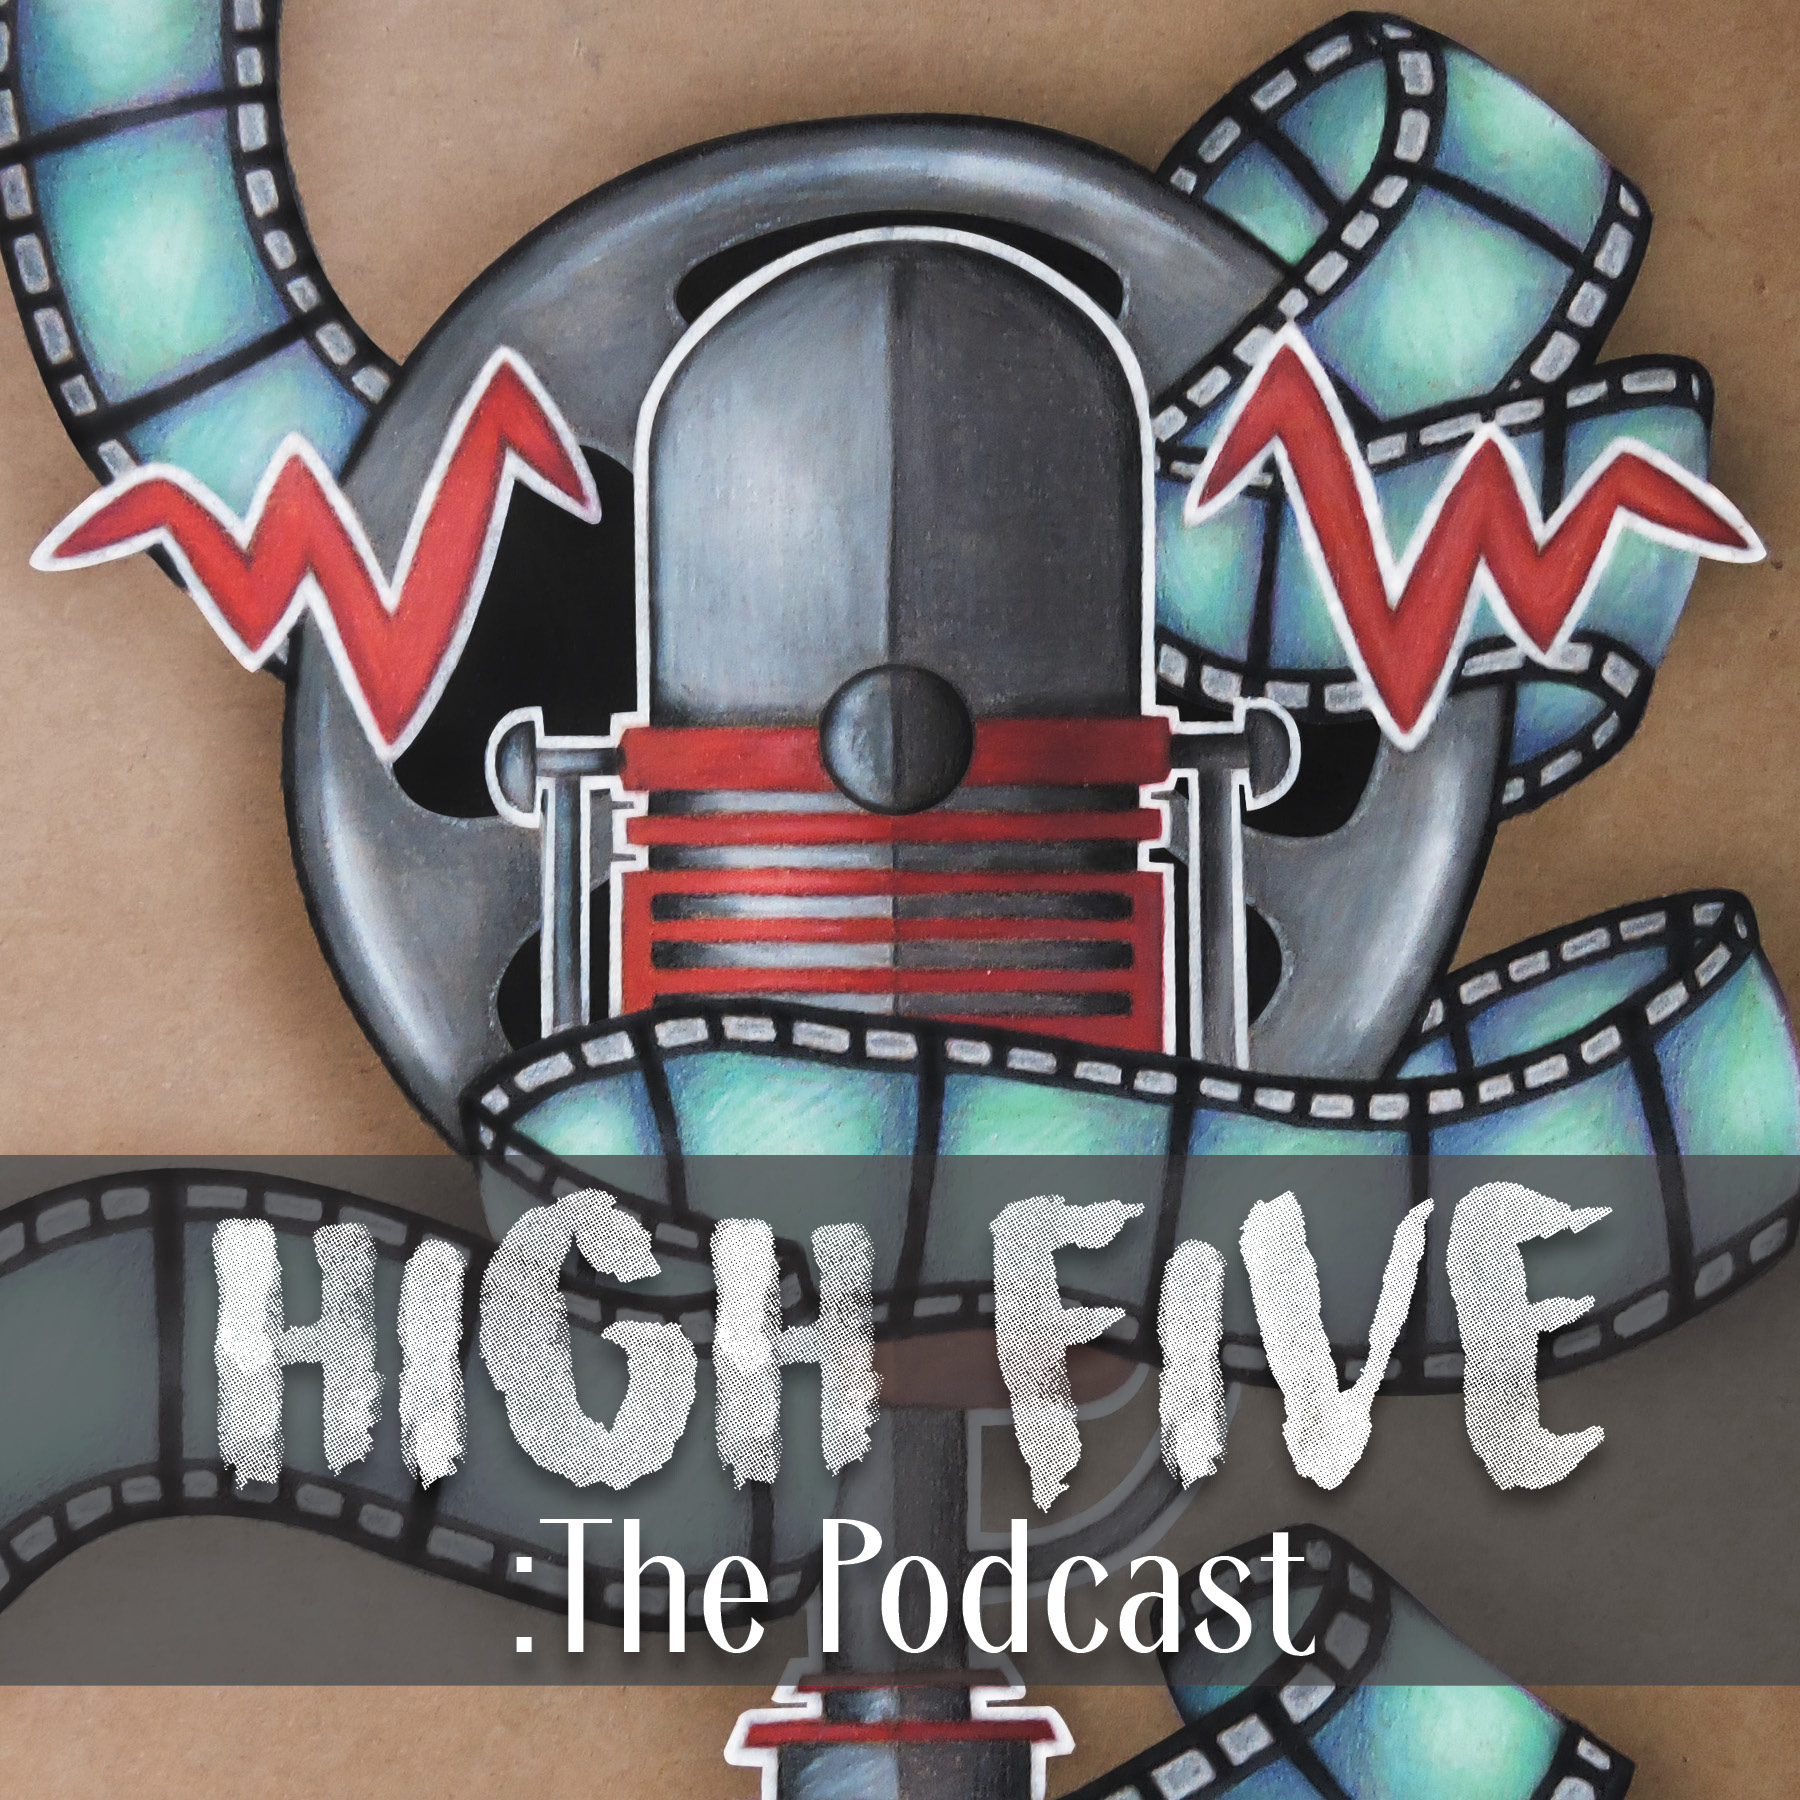 HF Hiatus Replay: The Snubbening - High Five: The Podcast